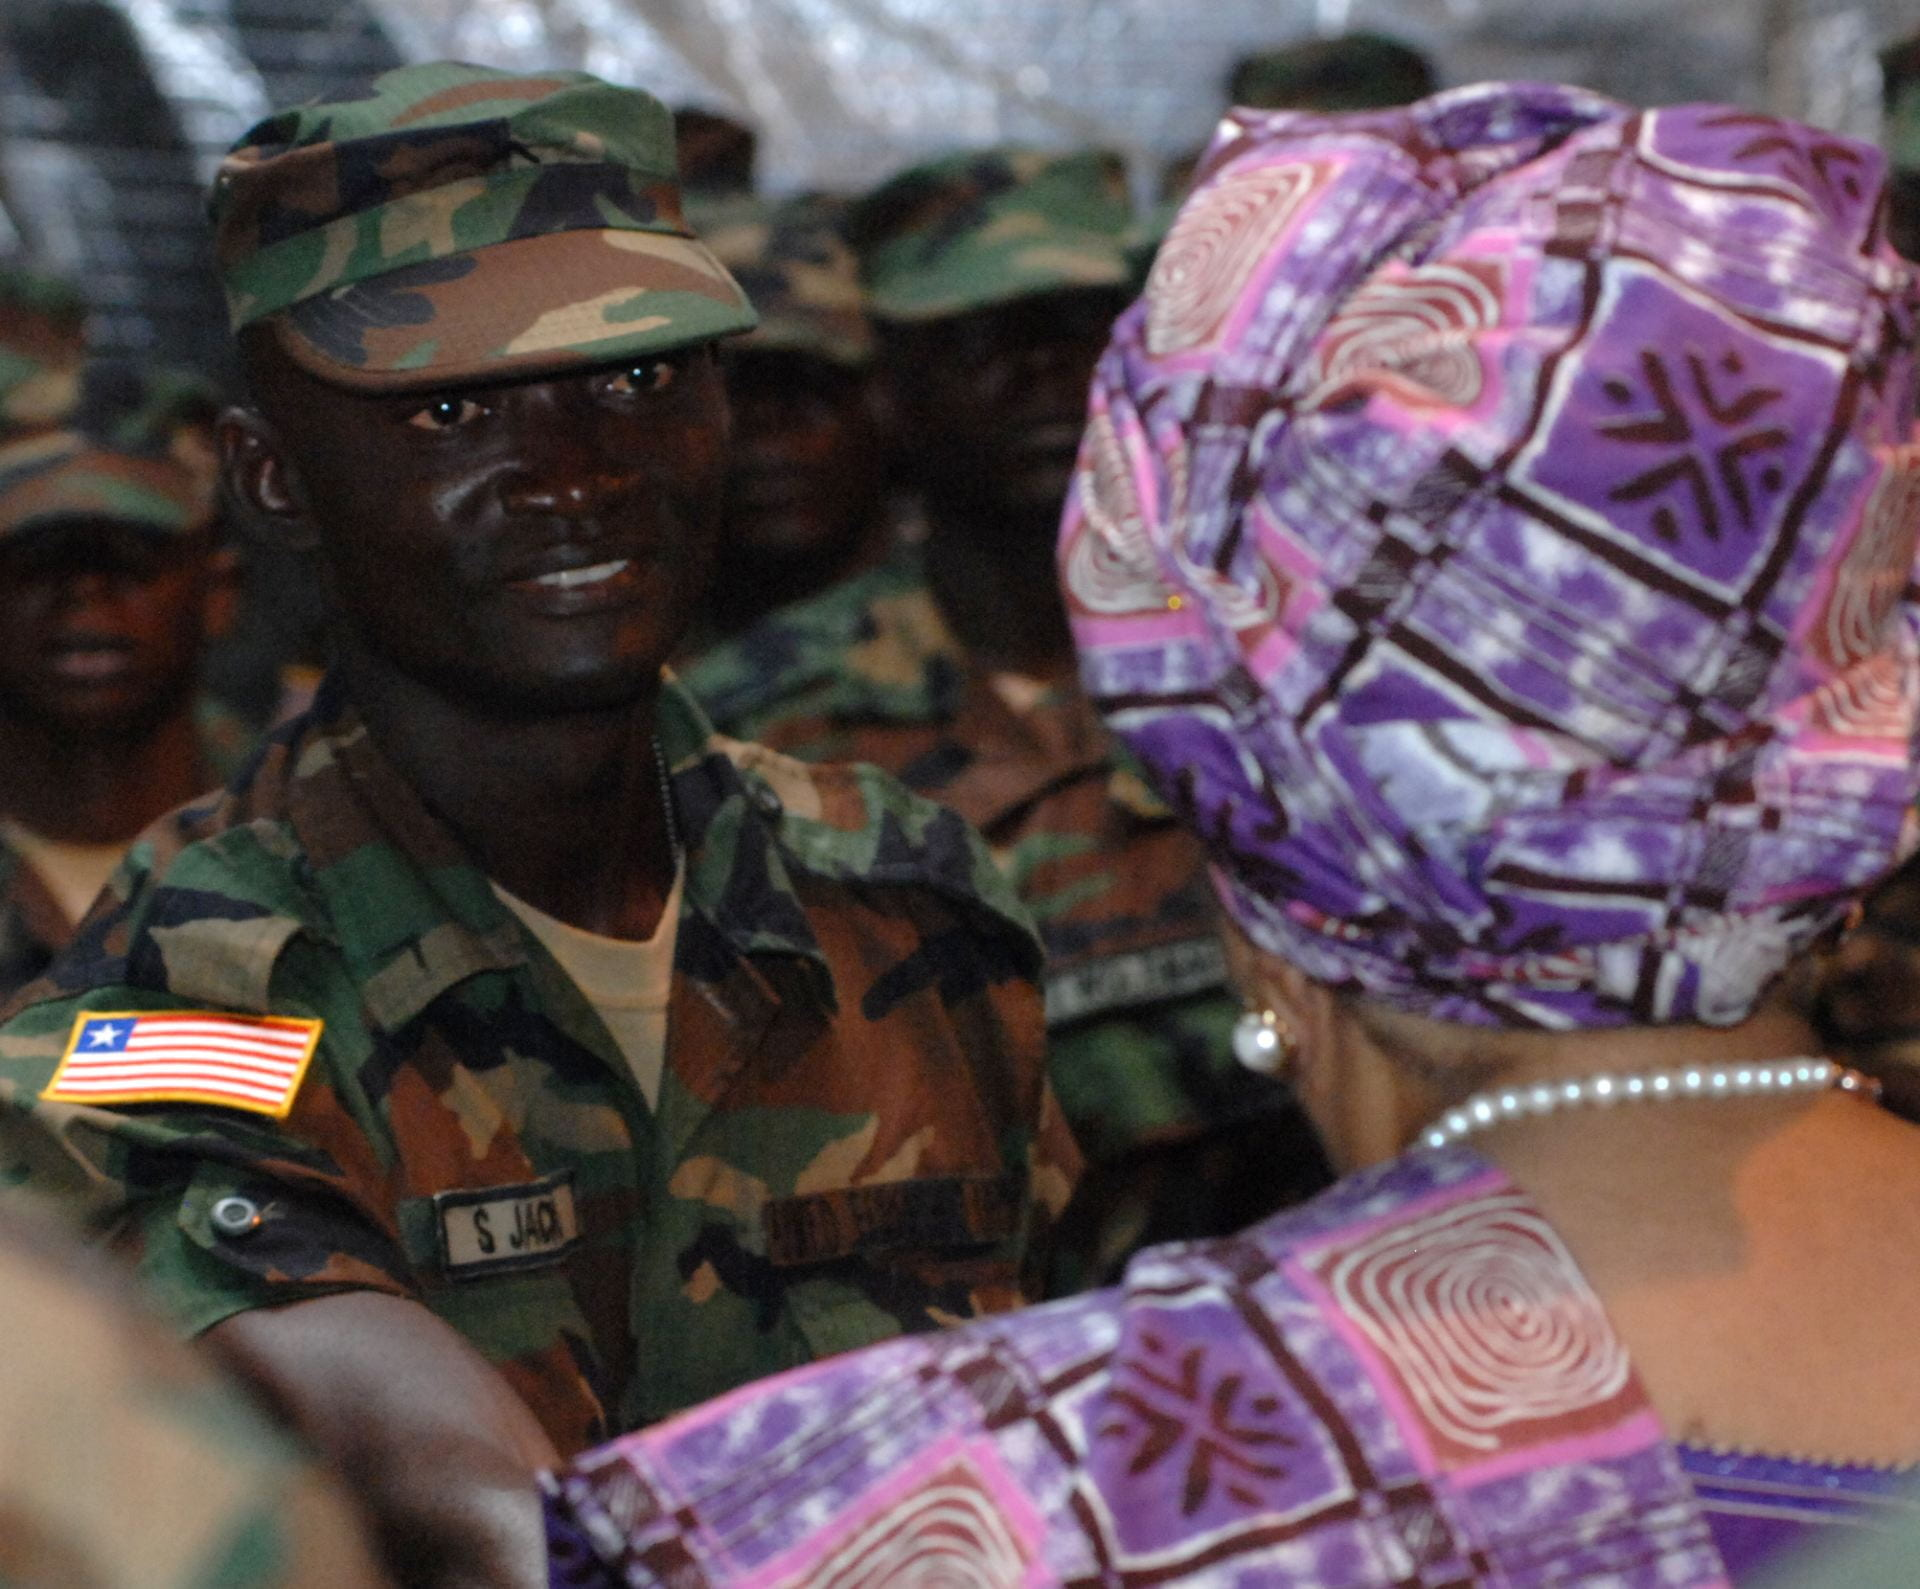 Liberia President Ellen Johnson Sirleaf greets an Armed Forces of Liberia soldiers. Source: DVIDSHUB, Creative Commons